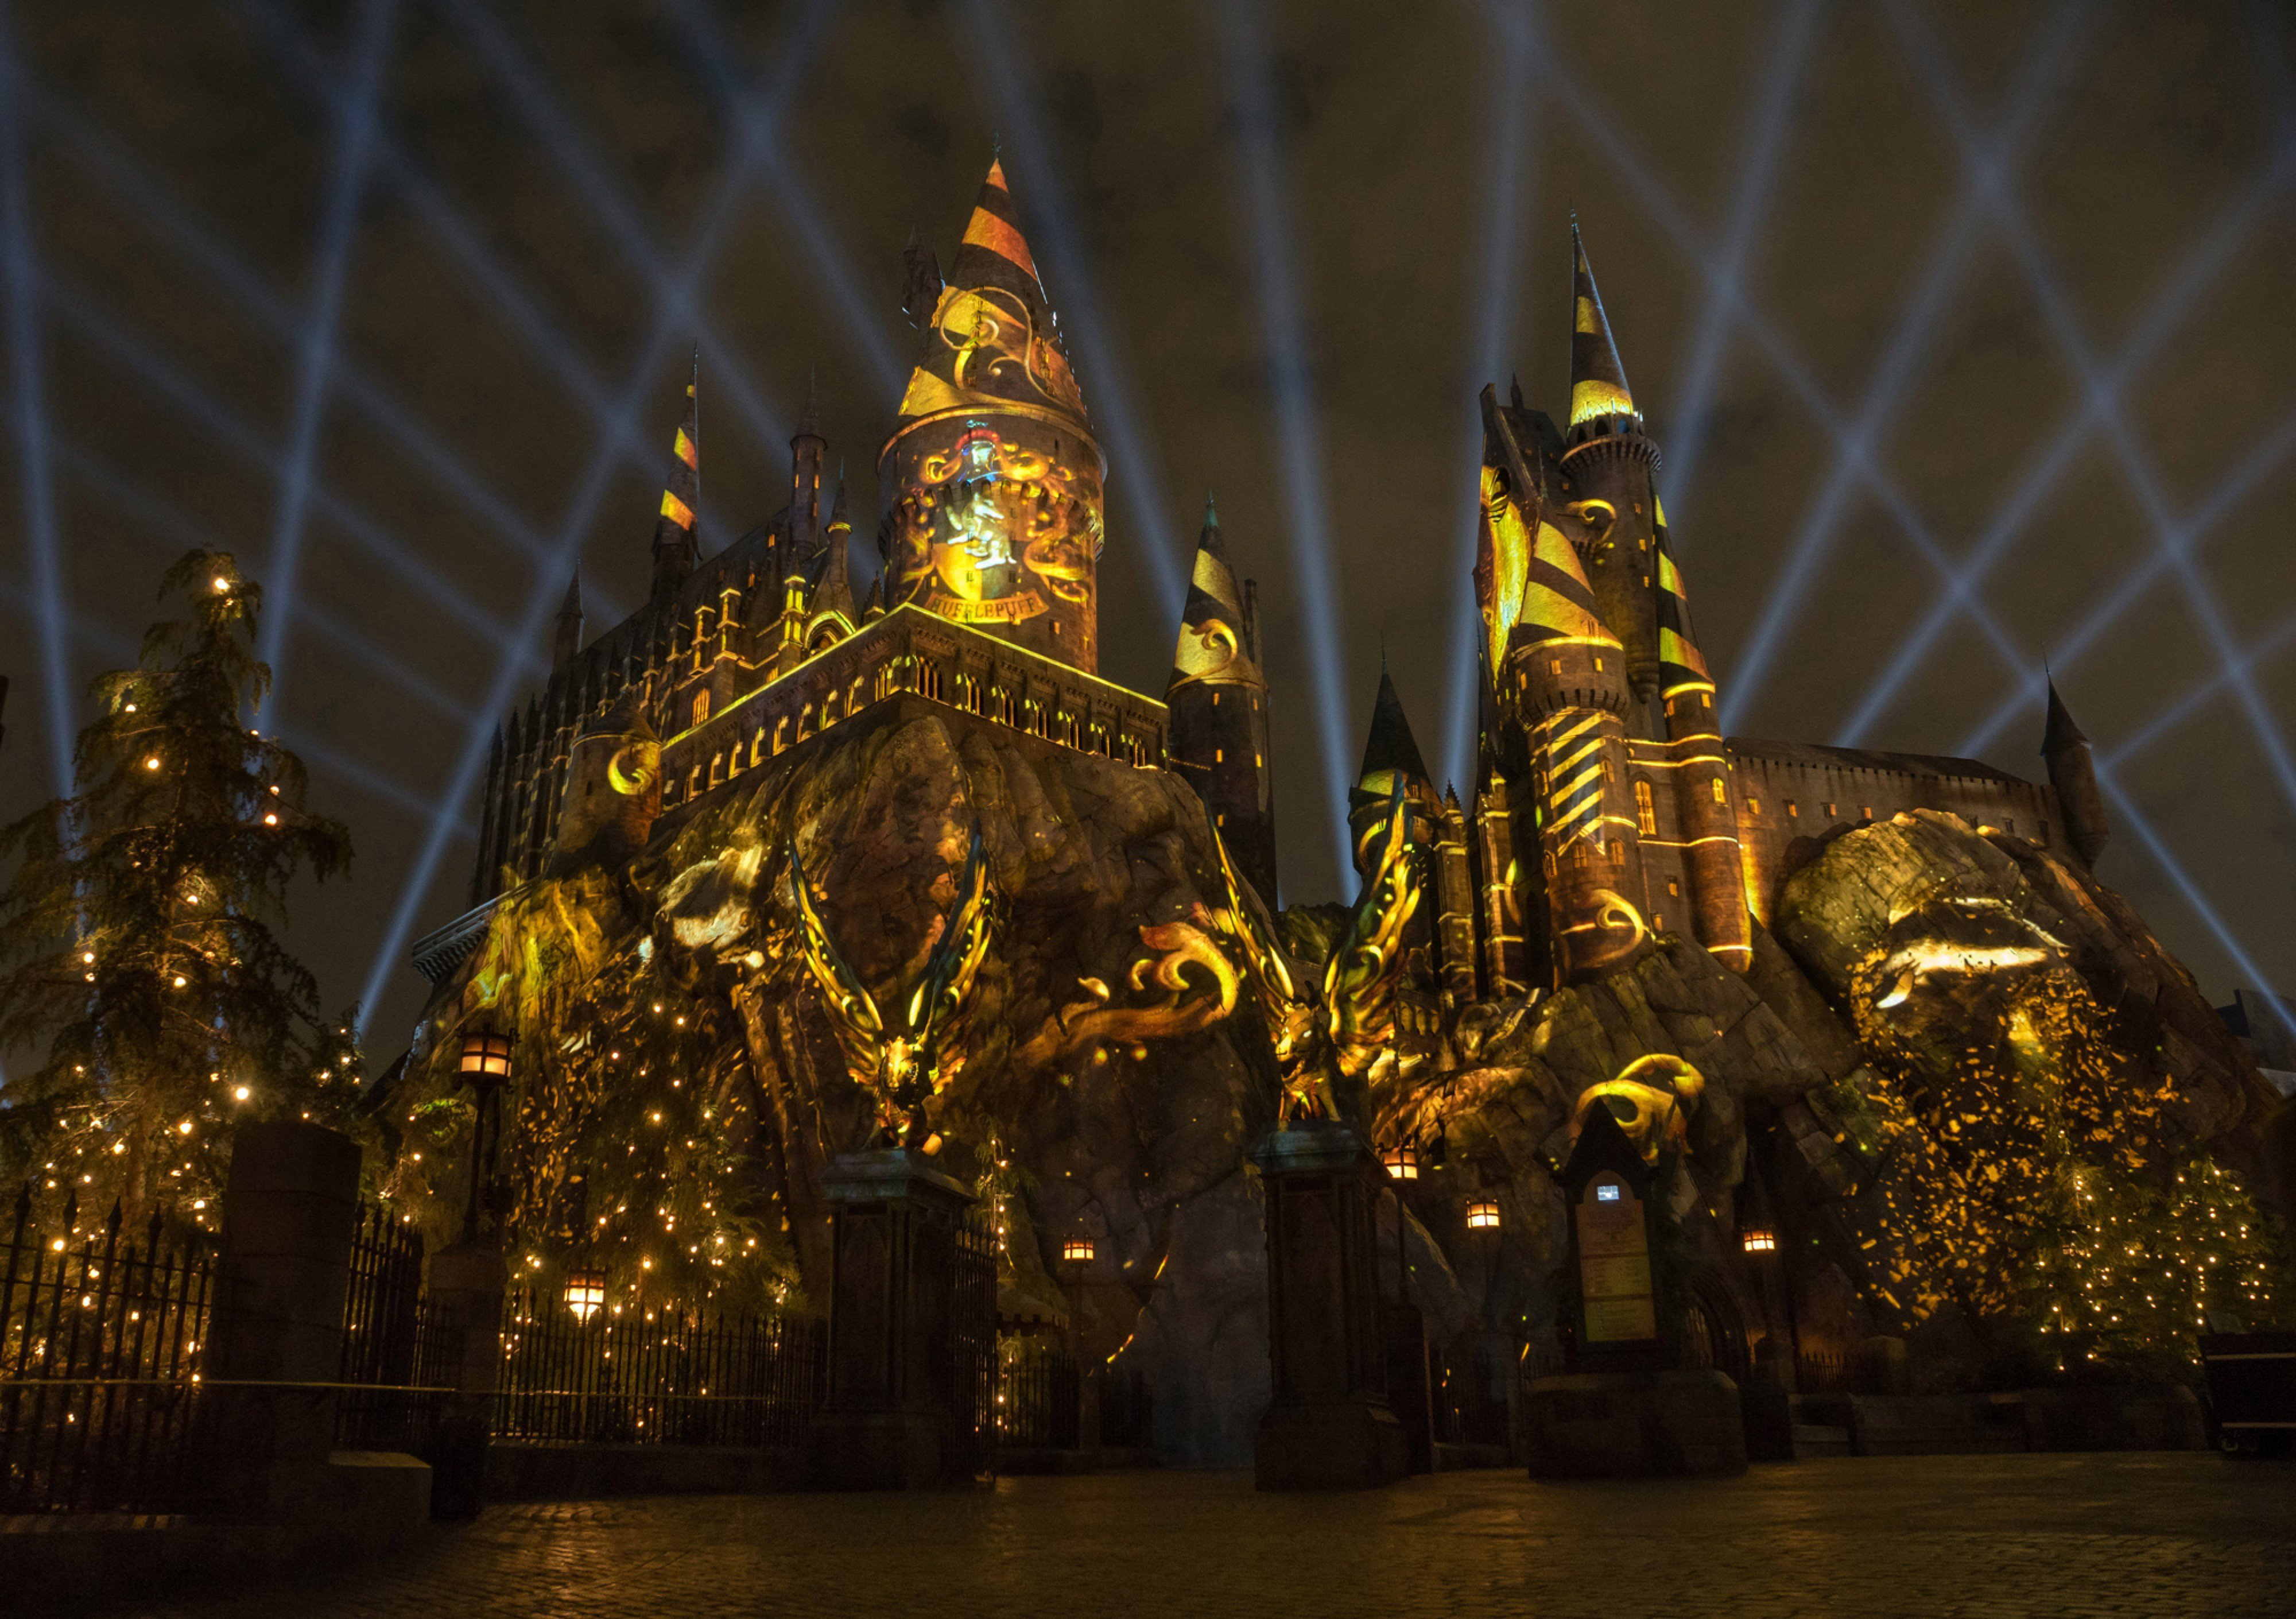 Dates for new Harry Potter projection show announced